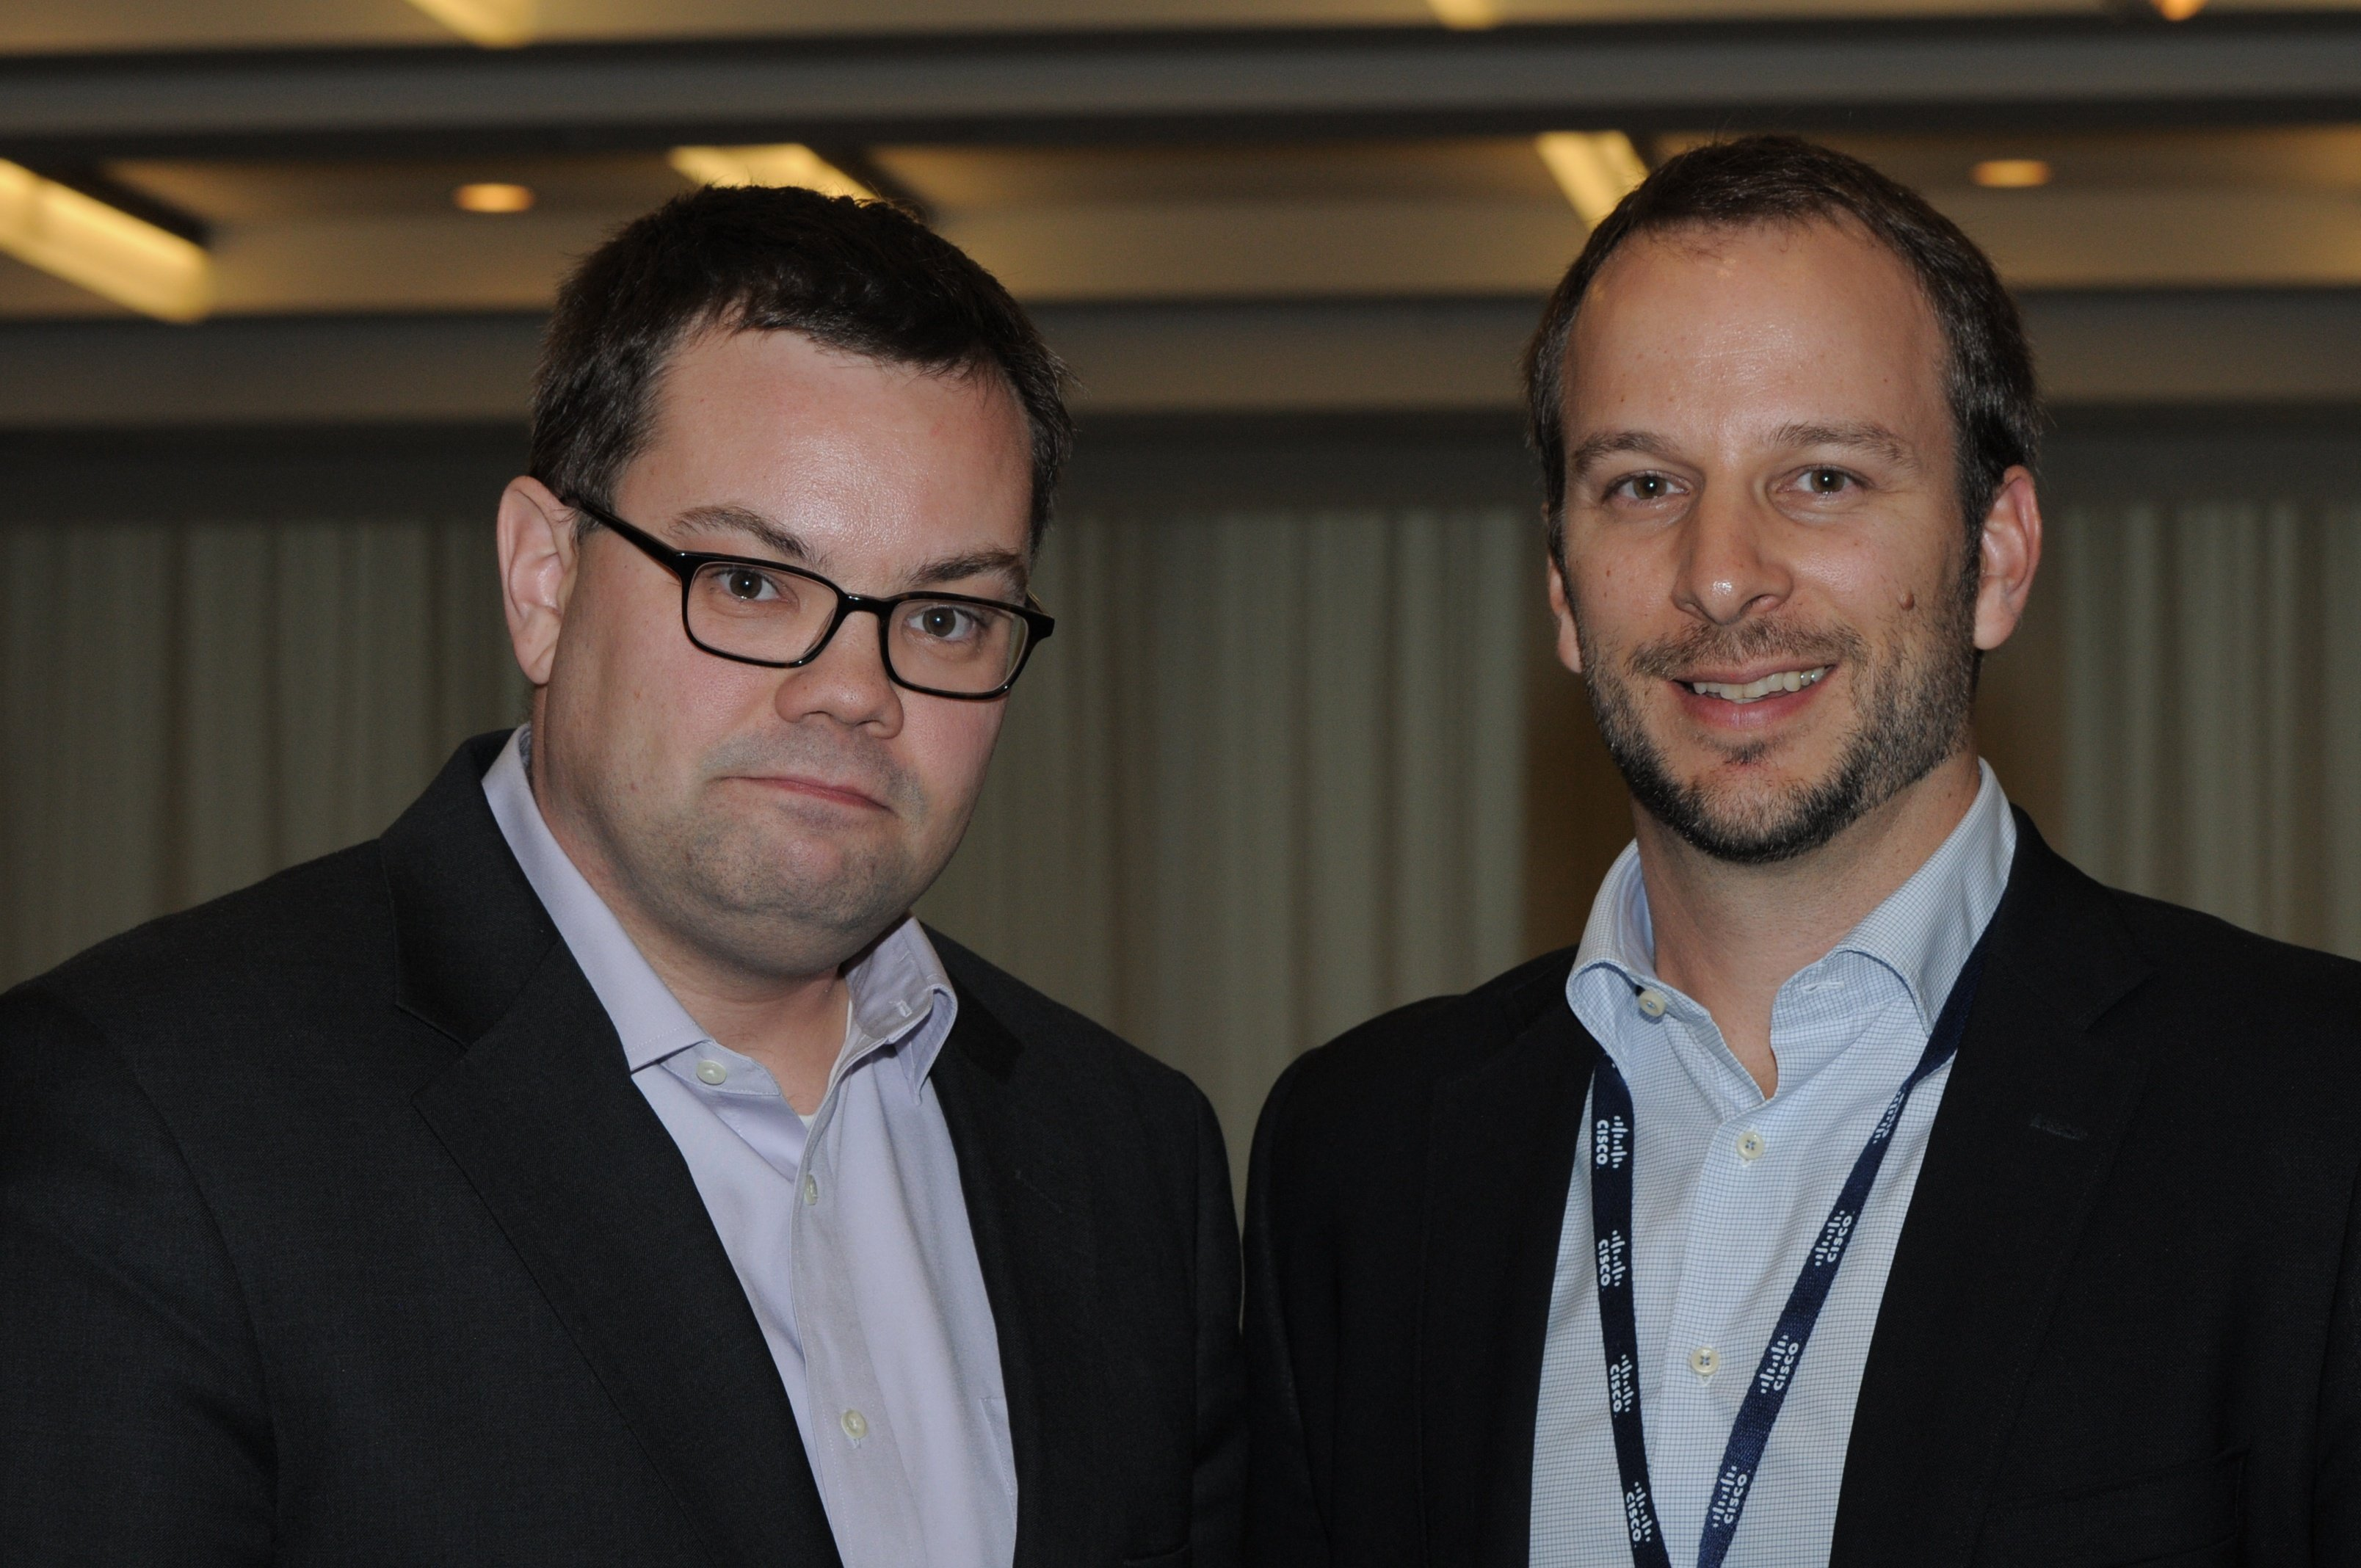 Josh Archambault, McAfee, and Jeff Gray, Glue Networks together after their luncheon partnership series speaking session